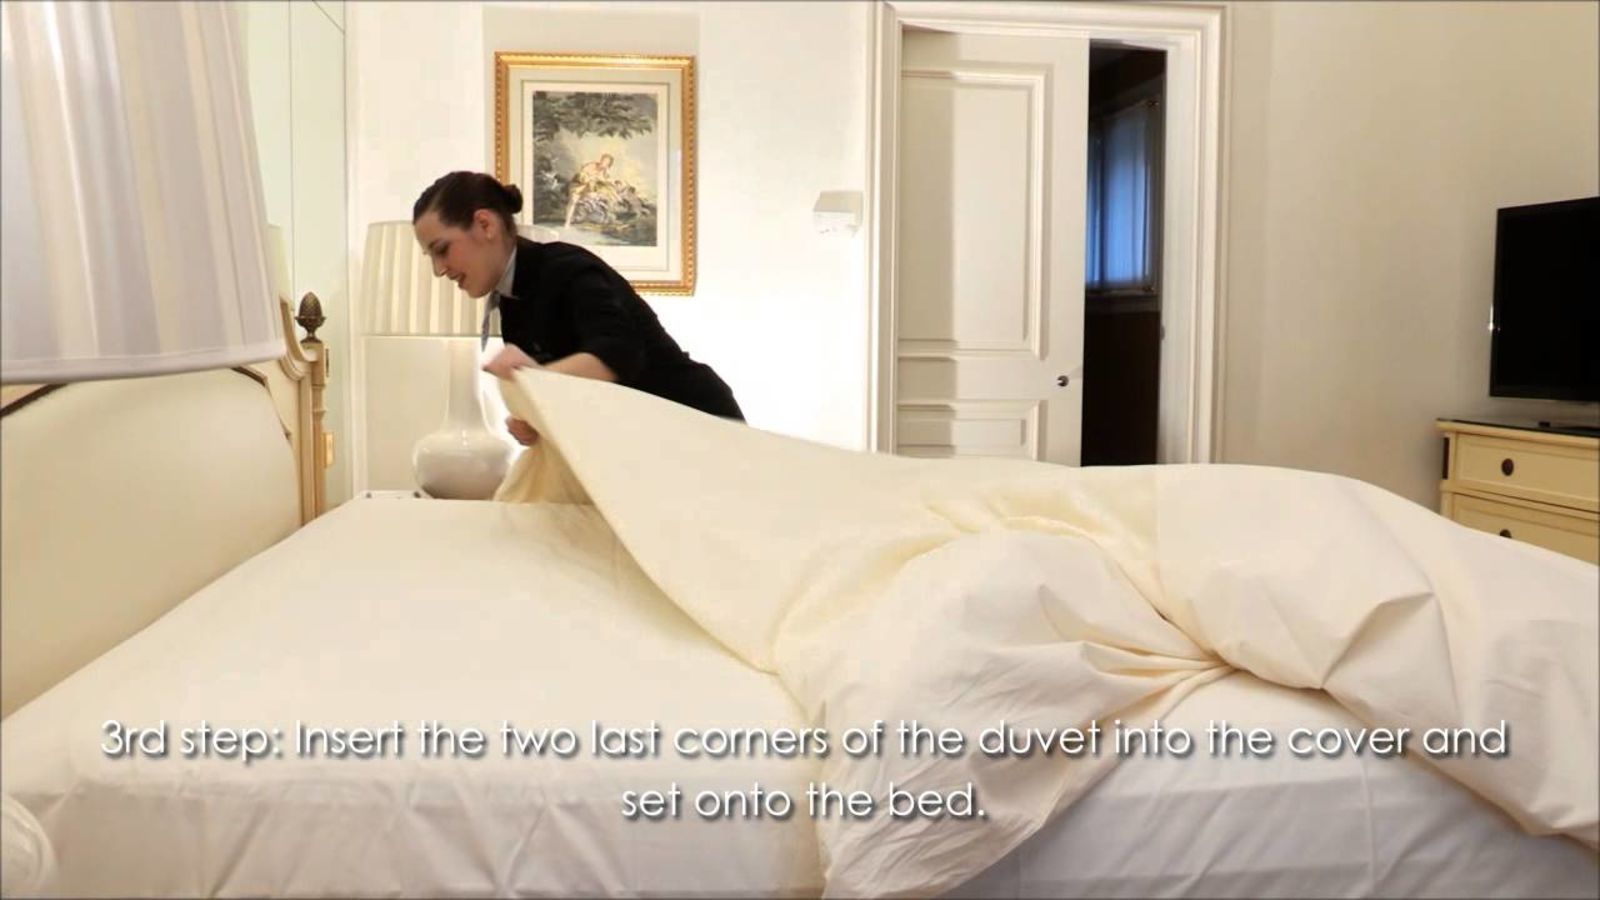 Make Your Bed Like a Pro with This Video from the Four